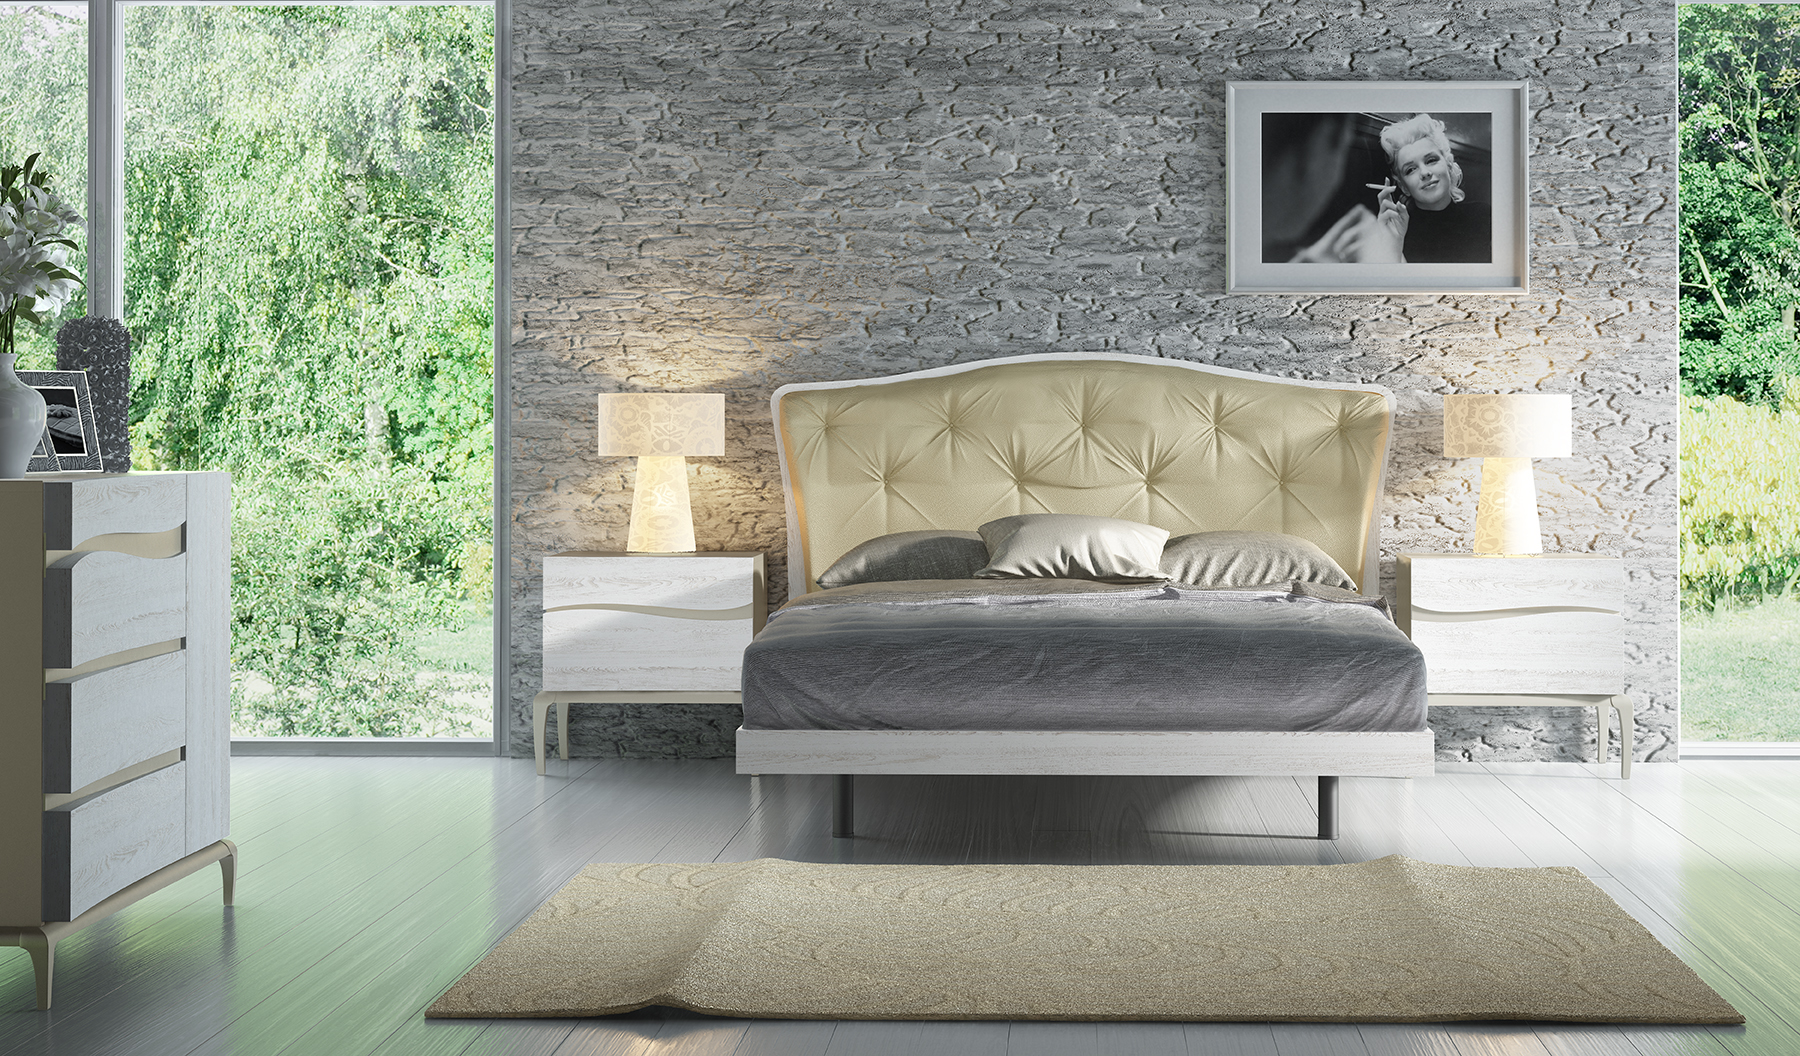 Overnice Wood Contemporary High End Furniture Chicago